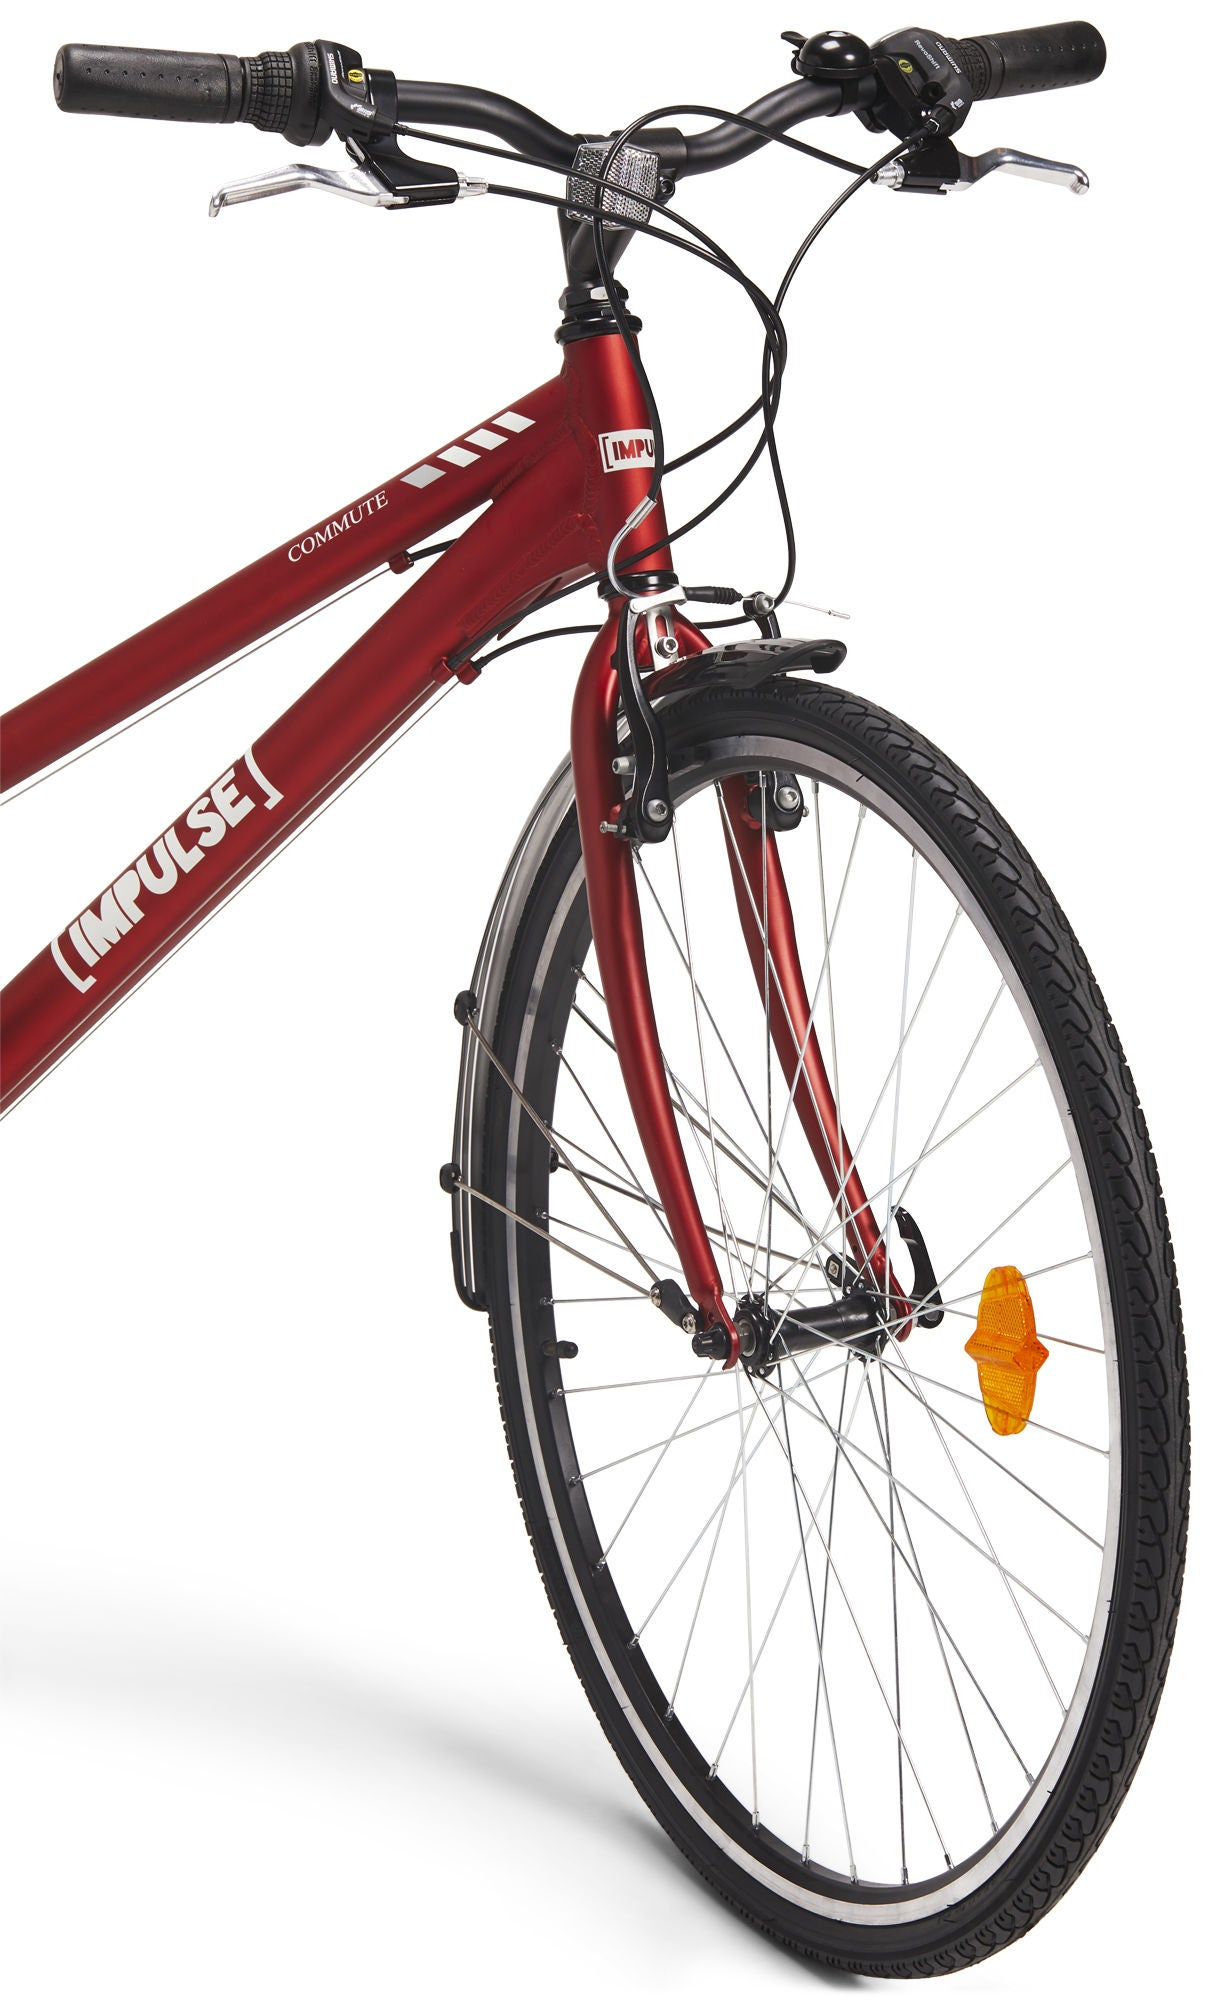 Impulse Premium Commute Sykkel 28 tommer, Red